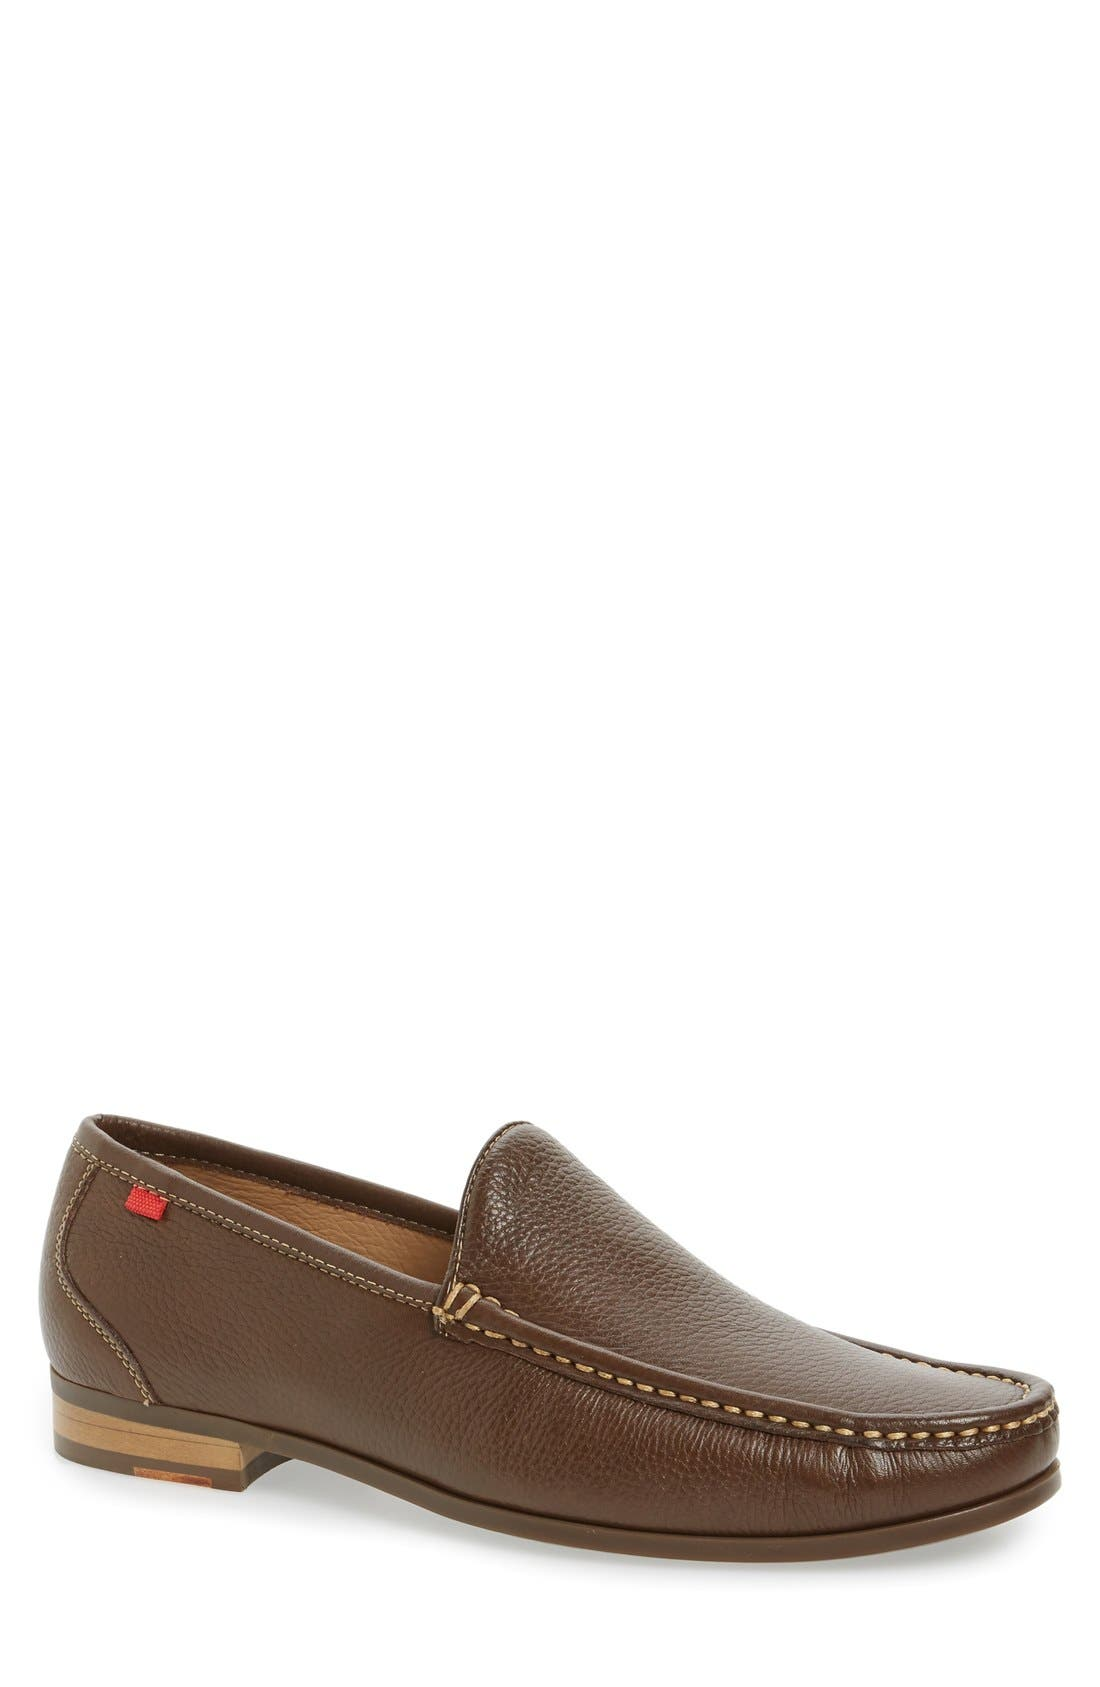 Marc Joseph New York Loafer (Men)